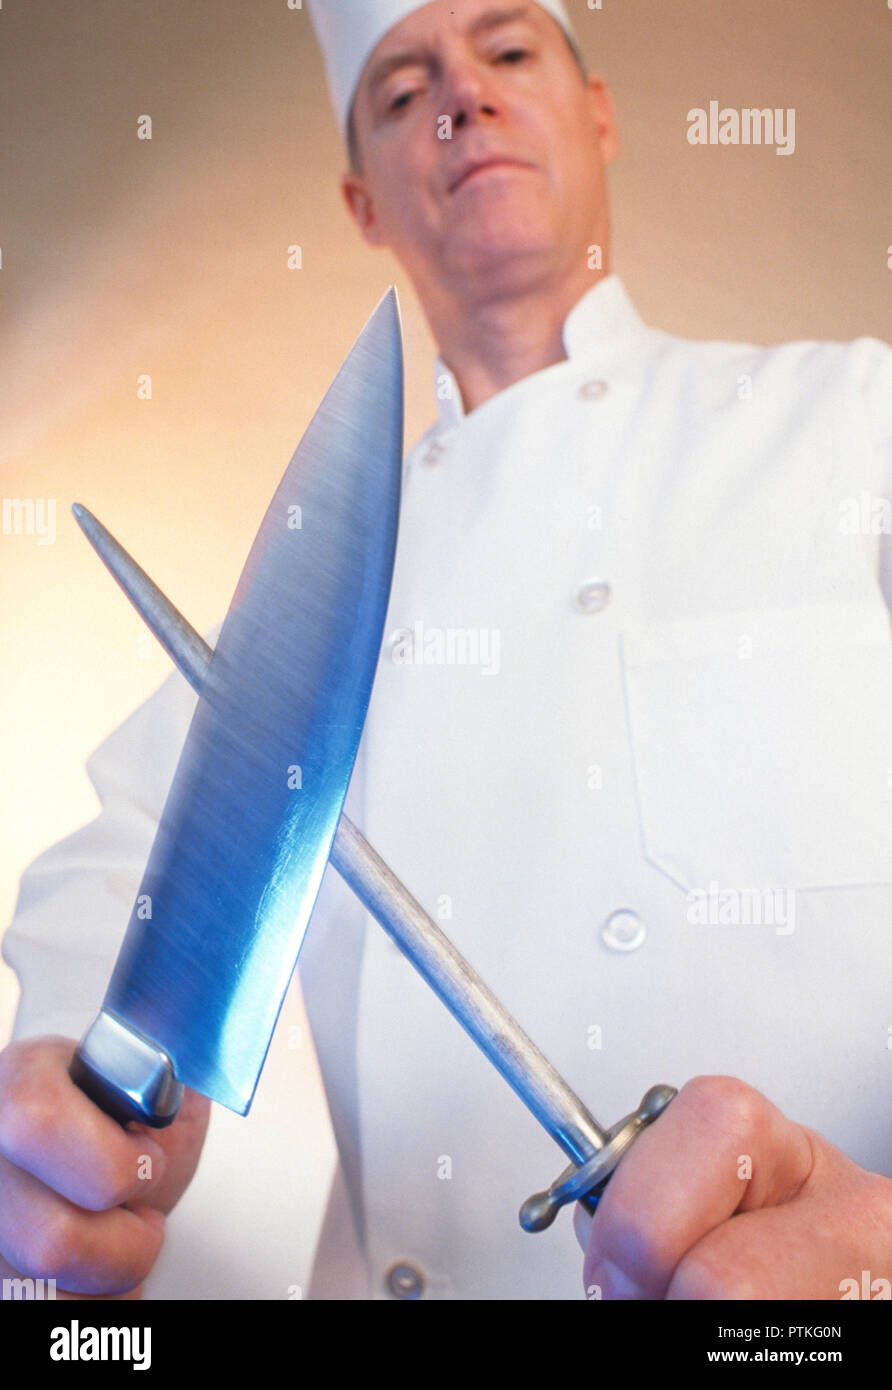 Chef sharpening butcher knife, USA - Stock Image